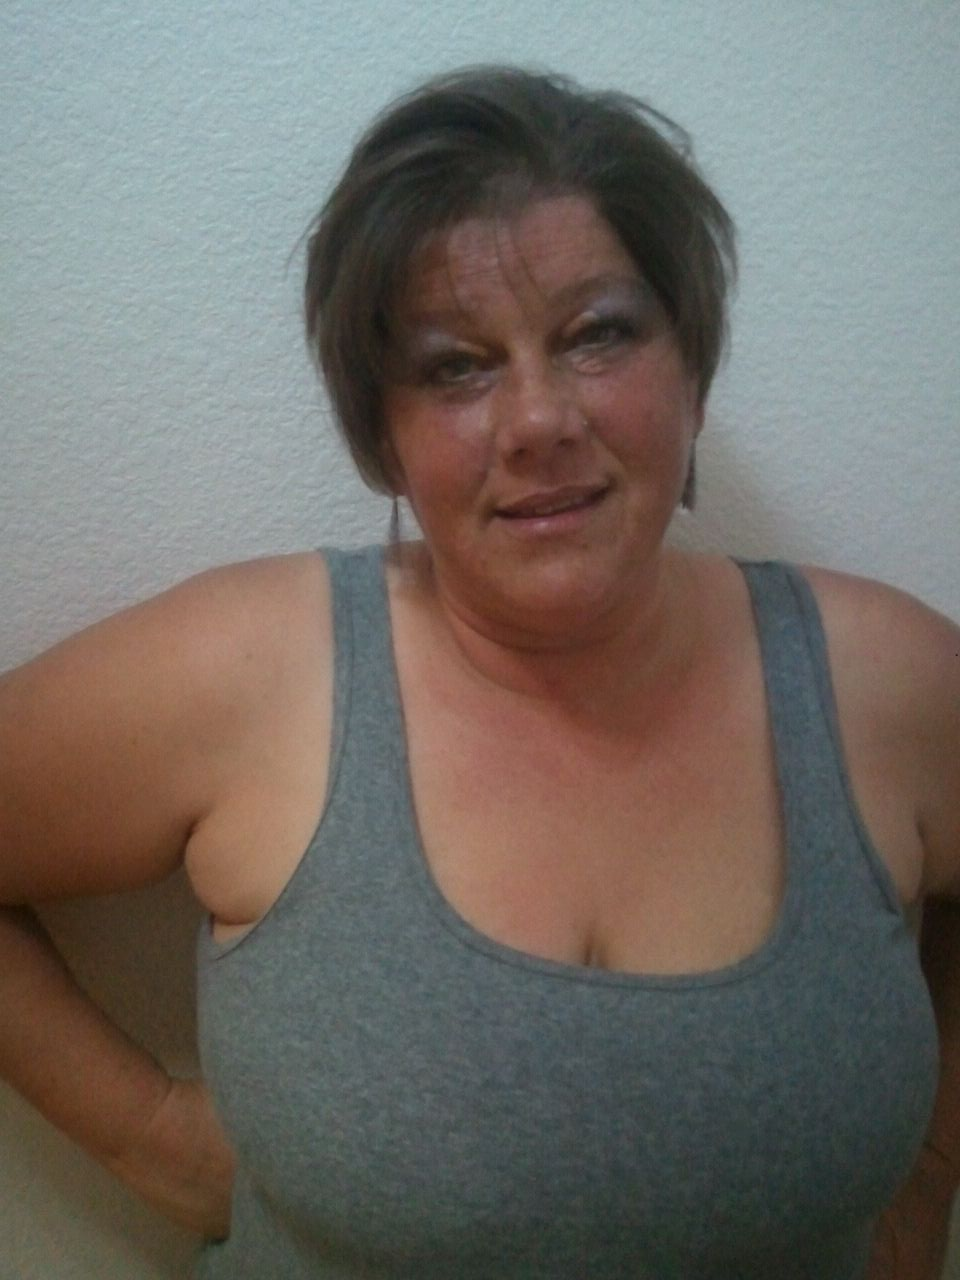 austinburg single girls Animalistictart in austinburg ohio oh - searching personal dating: name: animalistictart age:29: zip:44010: us state:oh: city:austinburg: i don't have a lot of free time during the day.